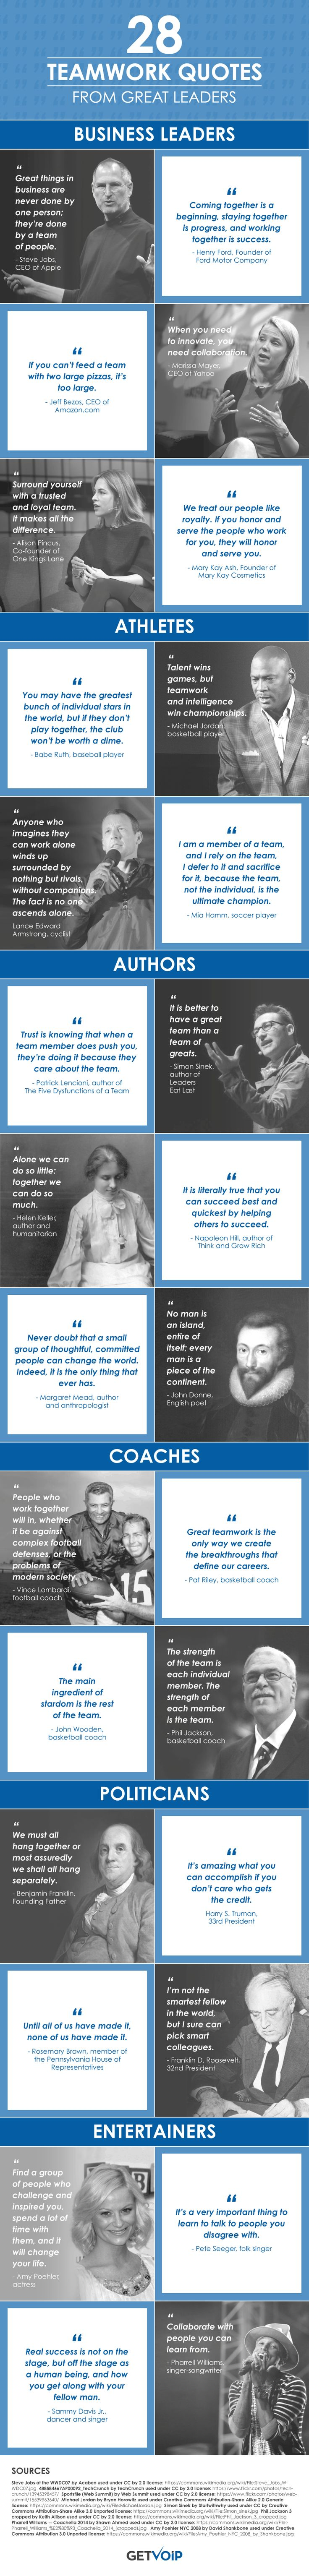 Teamwork quote : The 28 Teamwork Quotes From Great Leaders Infographic remind us that teams provi…